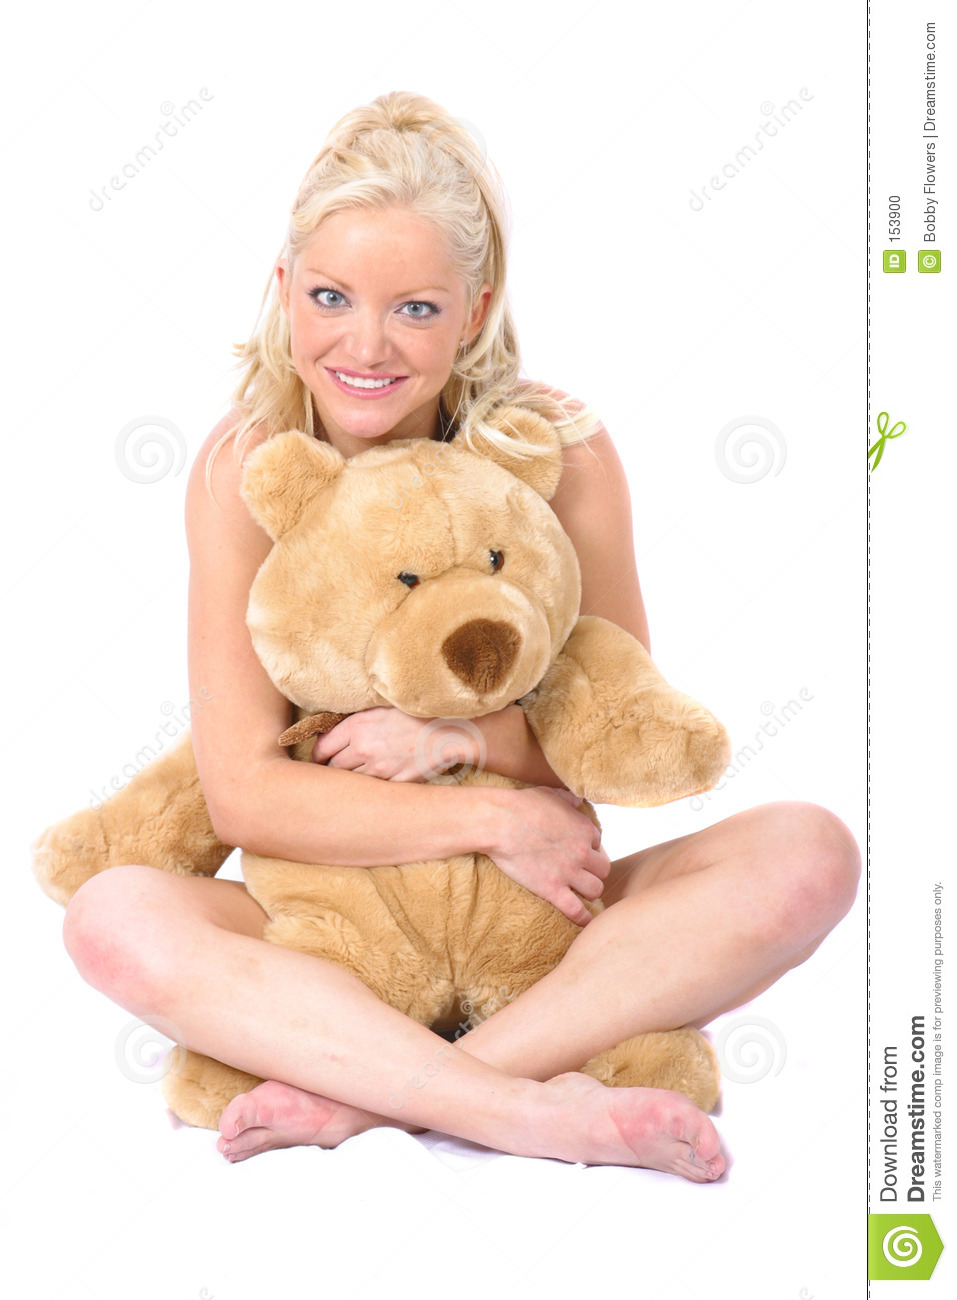 Model and Bear